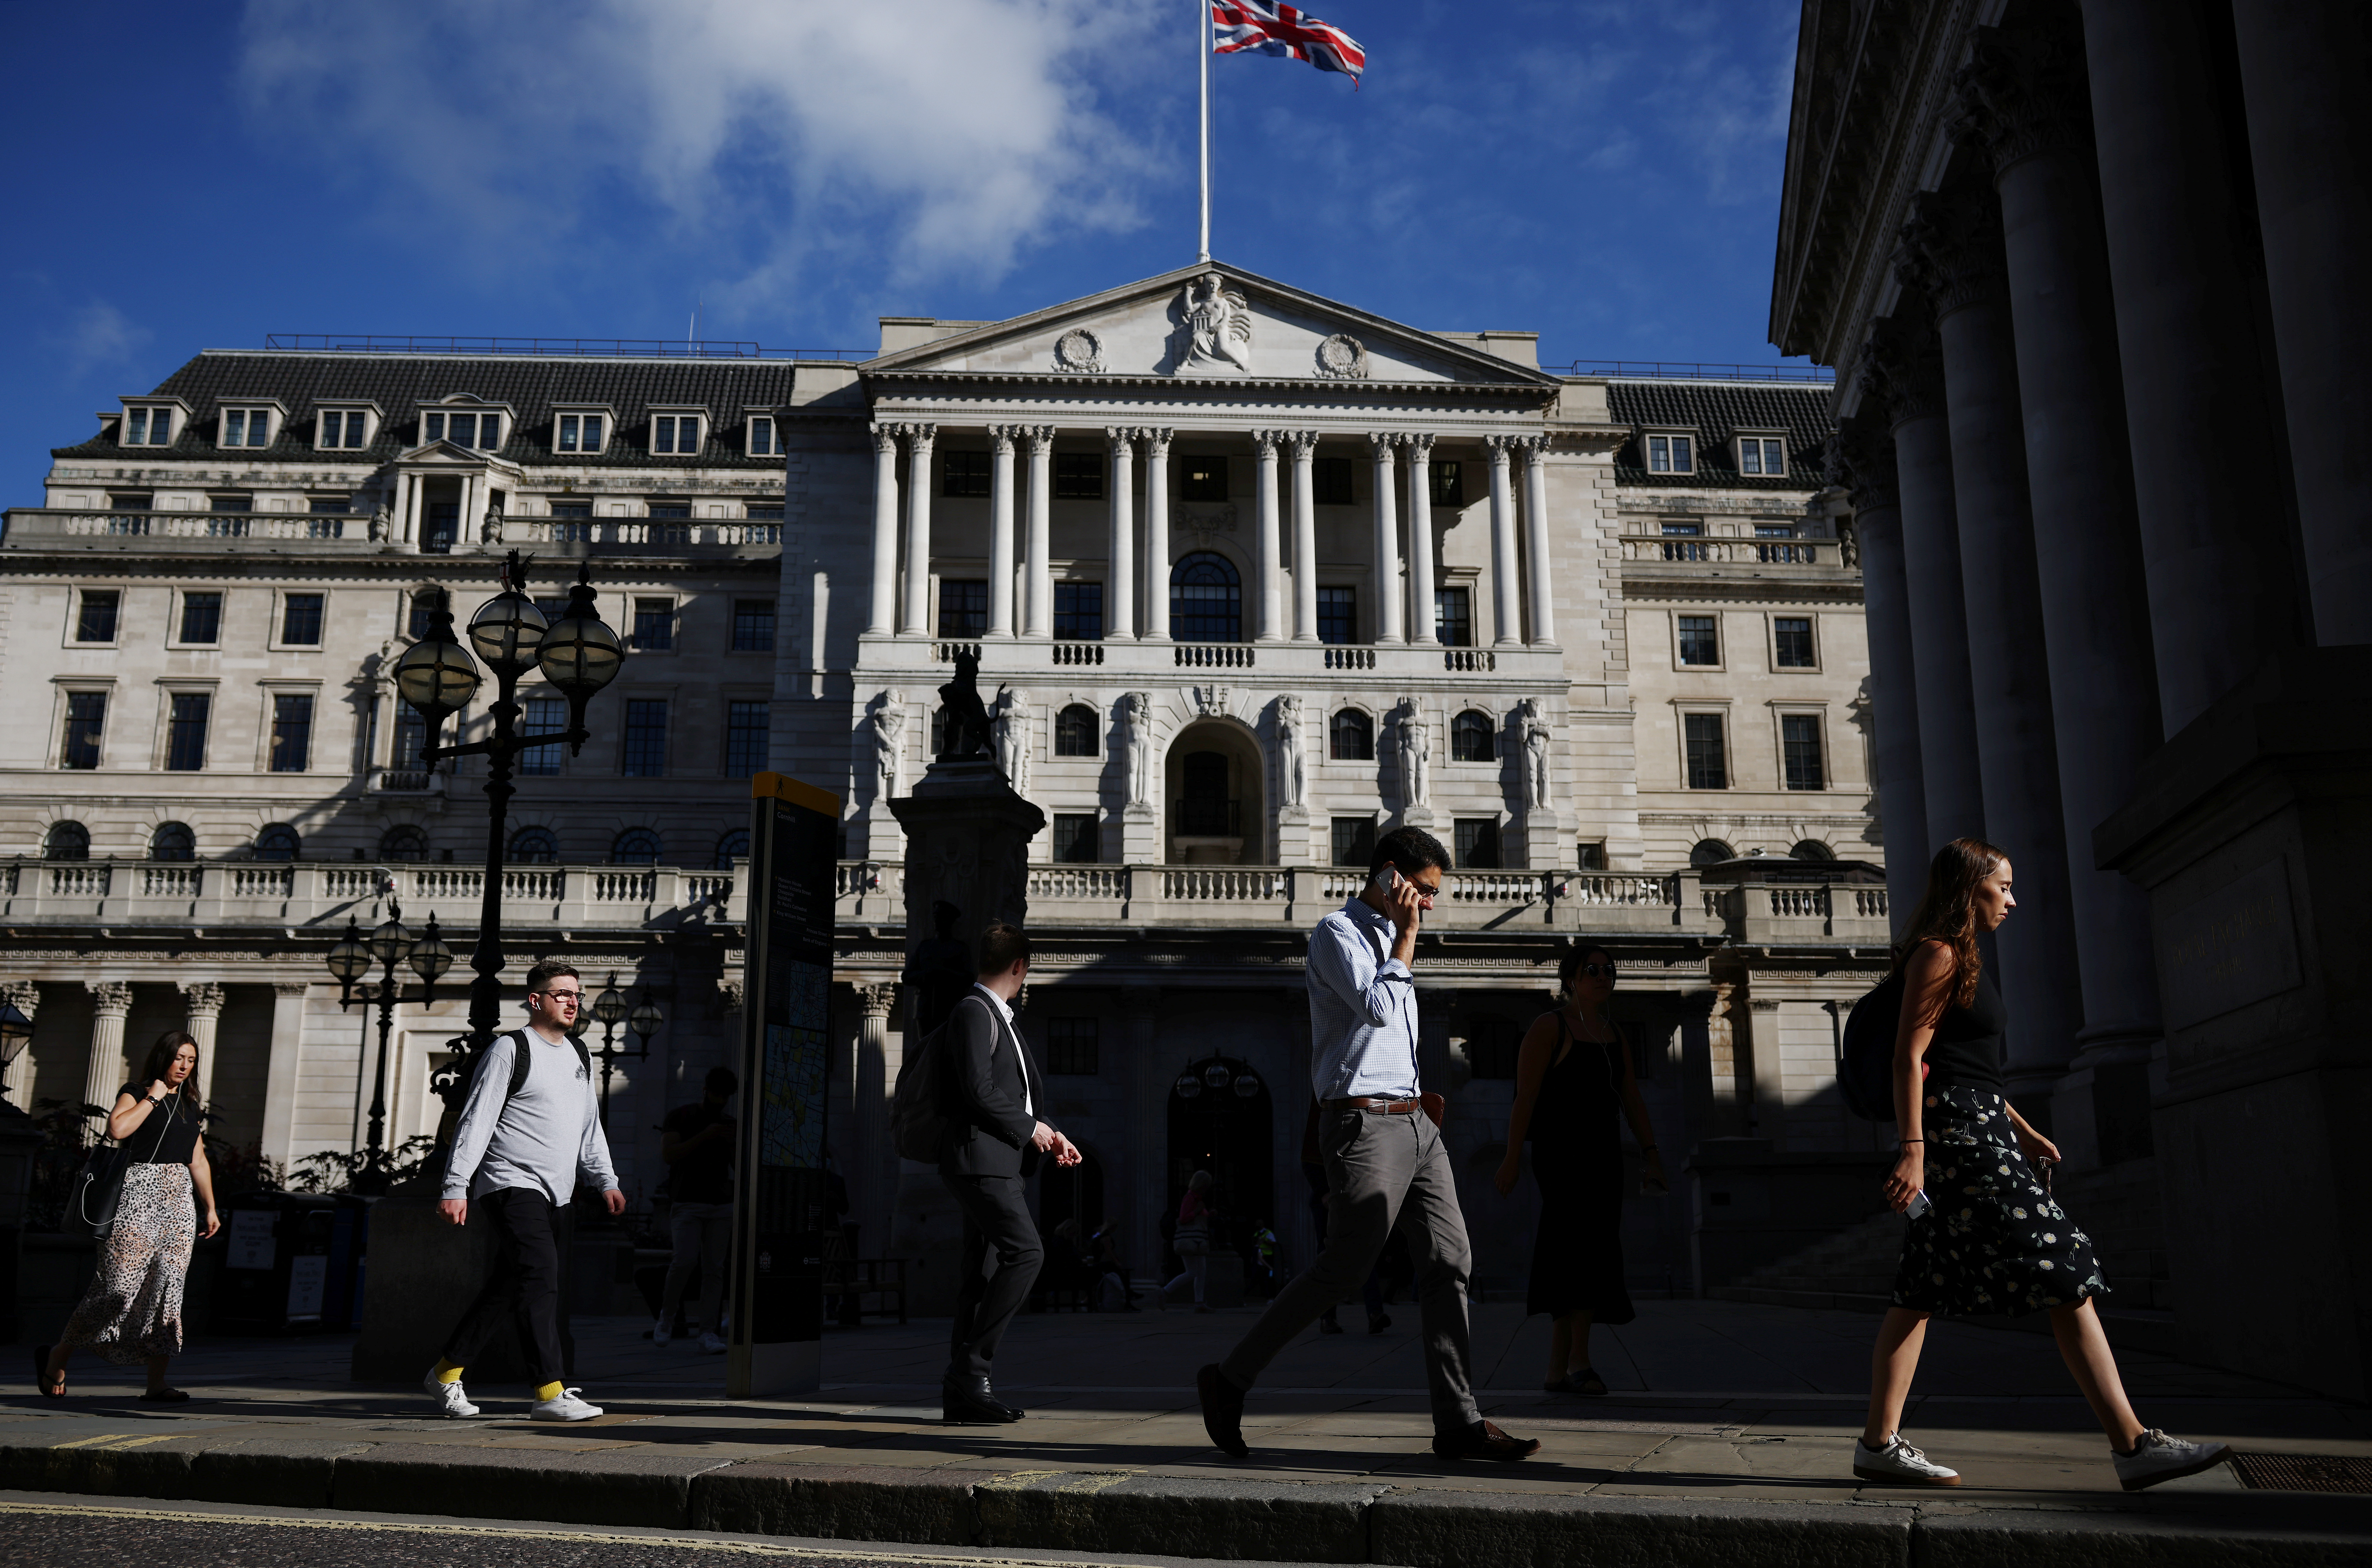 People walk past the Bank of England during morning rush hour, amid the coronavirus disease (COVID-19) pandemic in London, Britain, July 29, 2021. REUTERS/Henry Nicholls